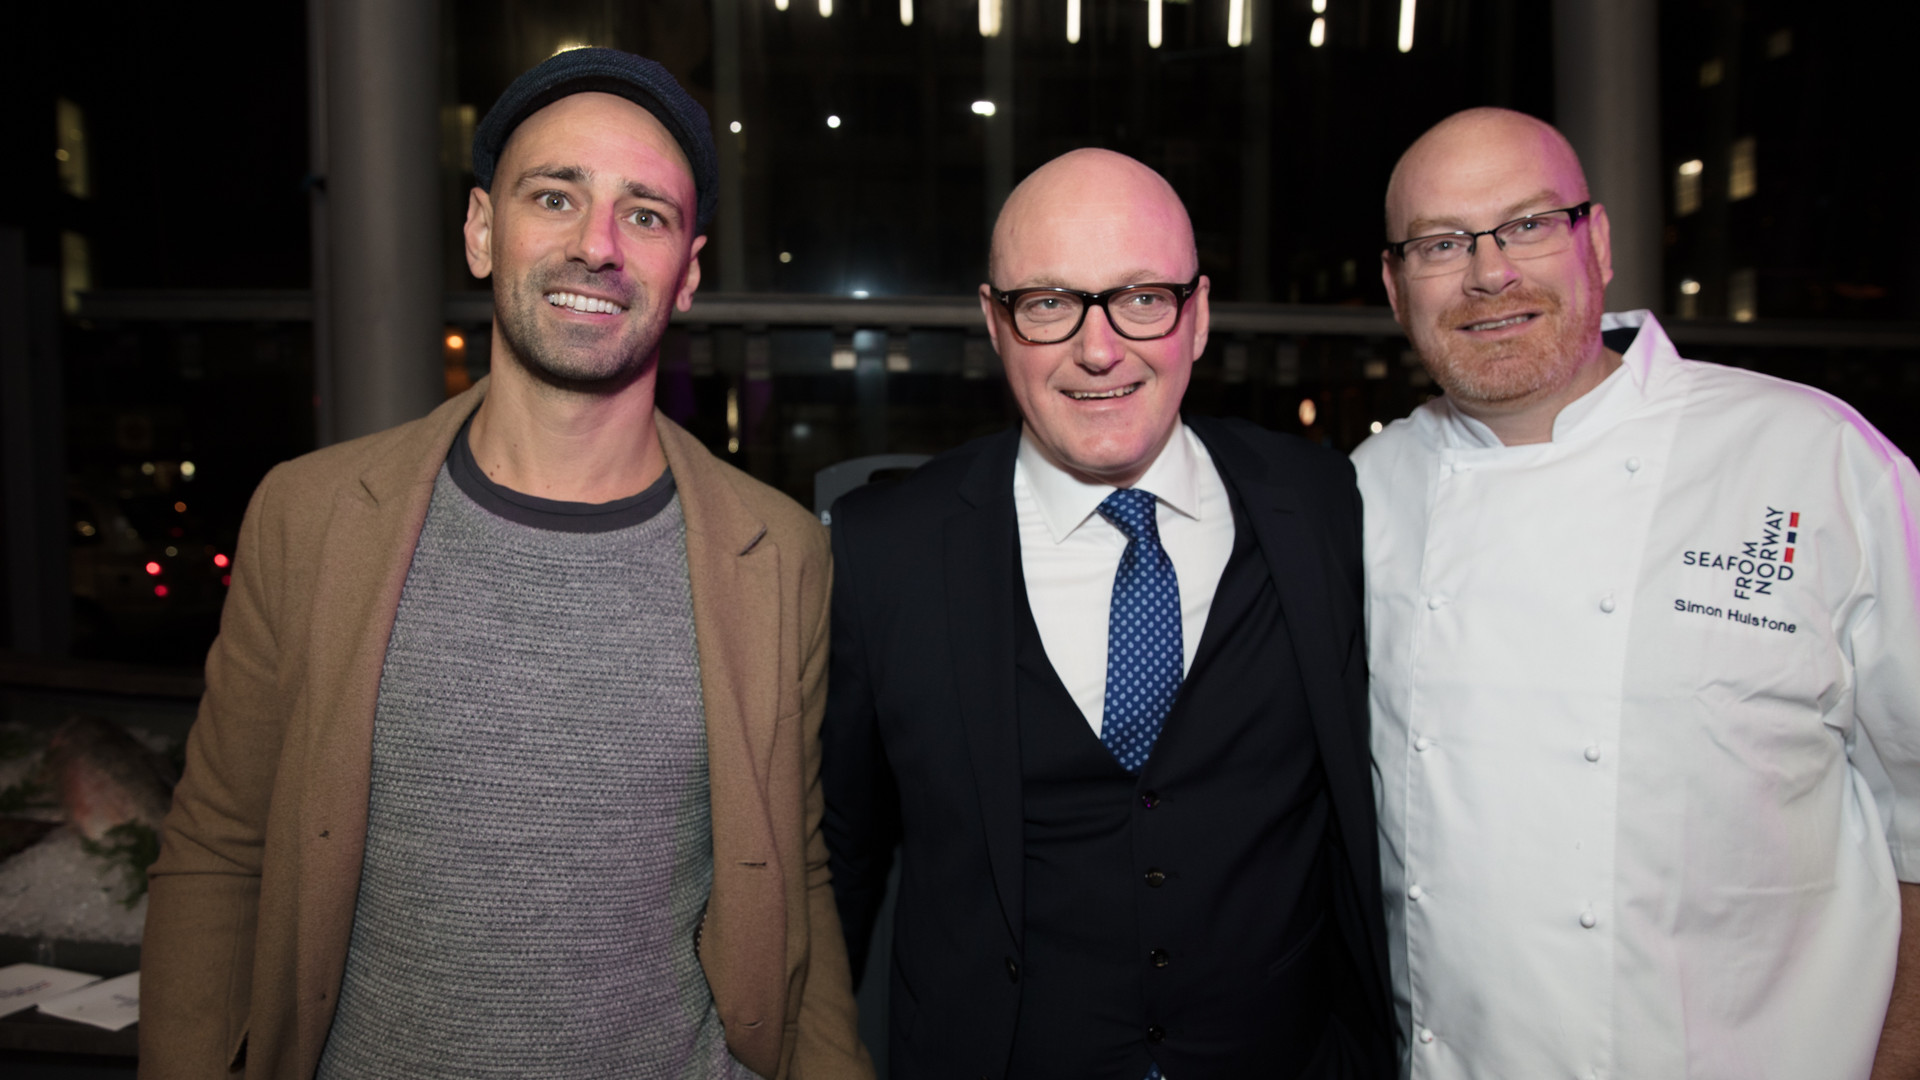 Square Up Media CEO Tim Slee with Simon Hulstone and Hans Frode, UK director at Seafood from Norway